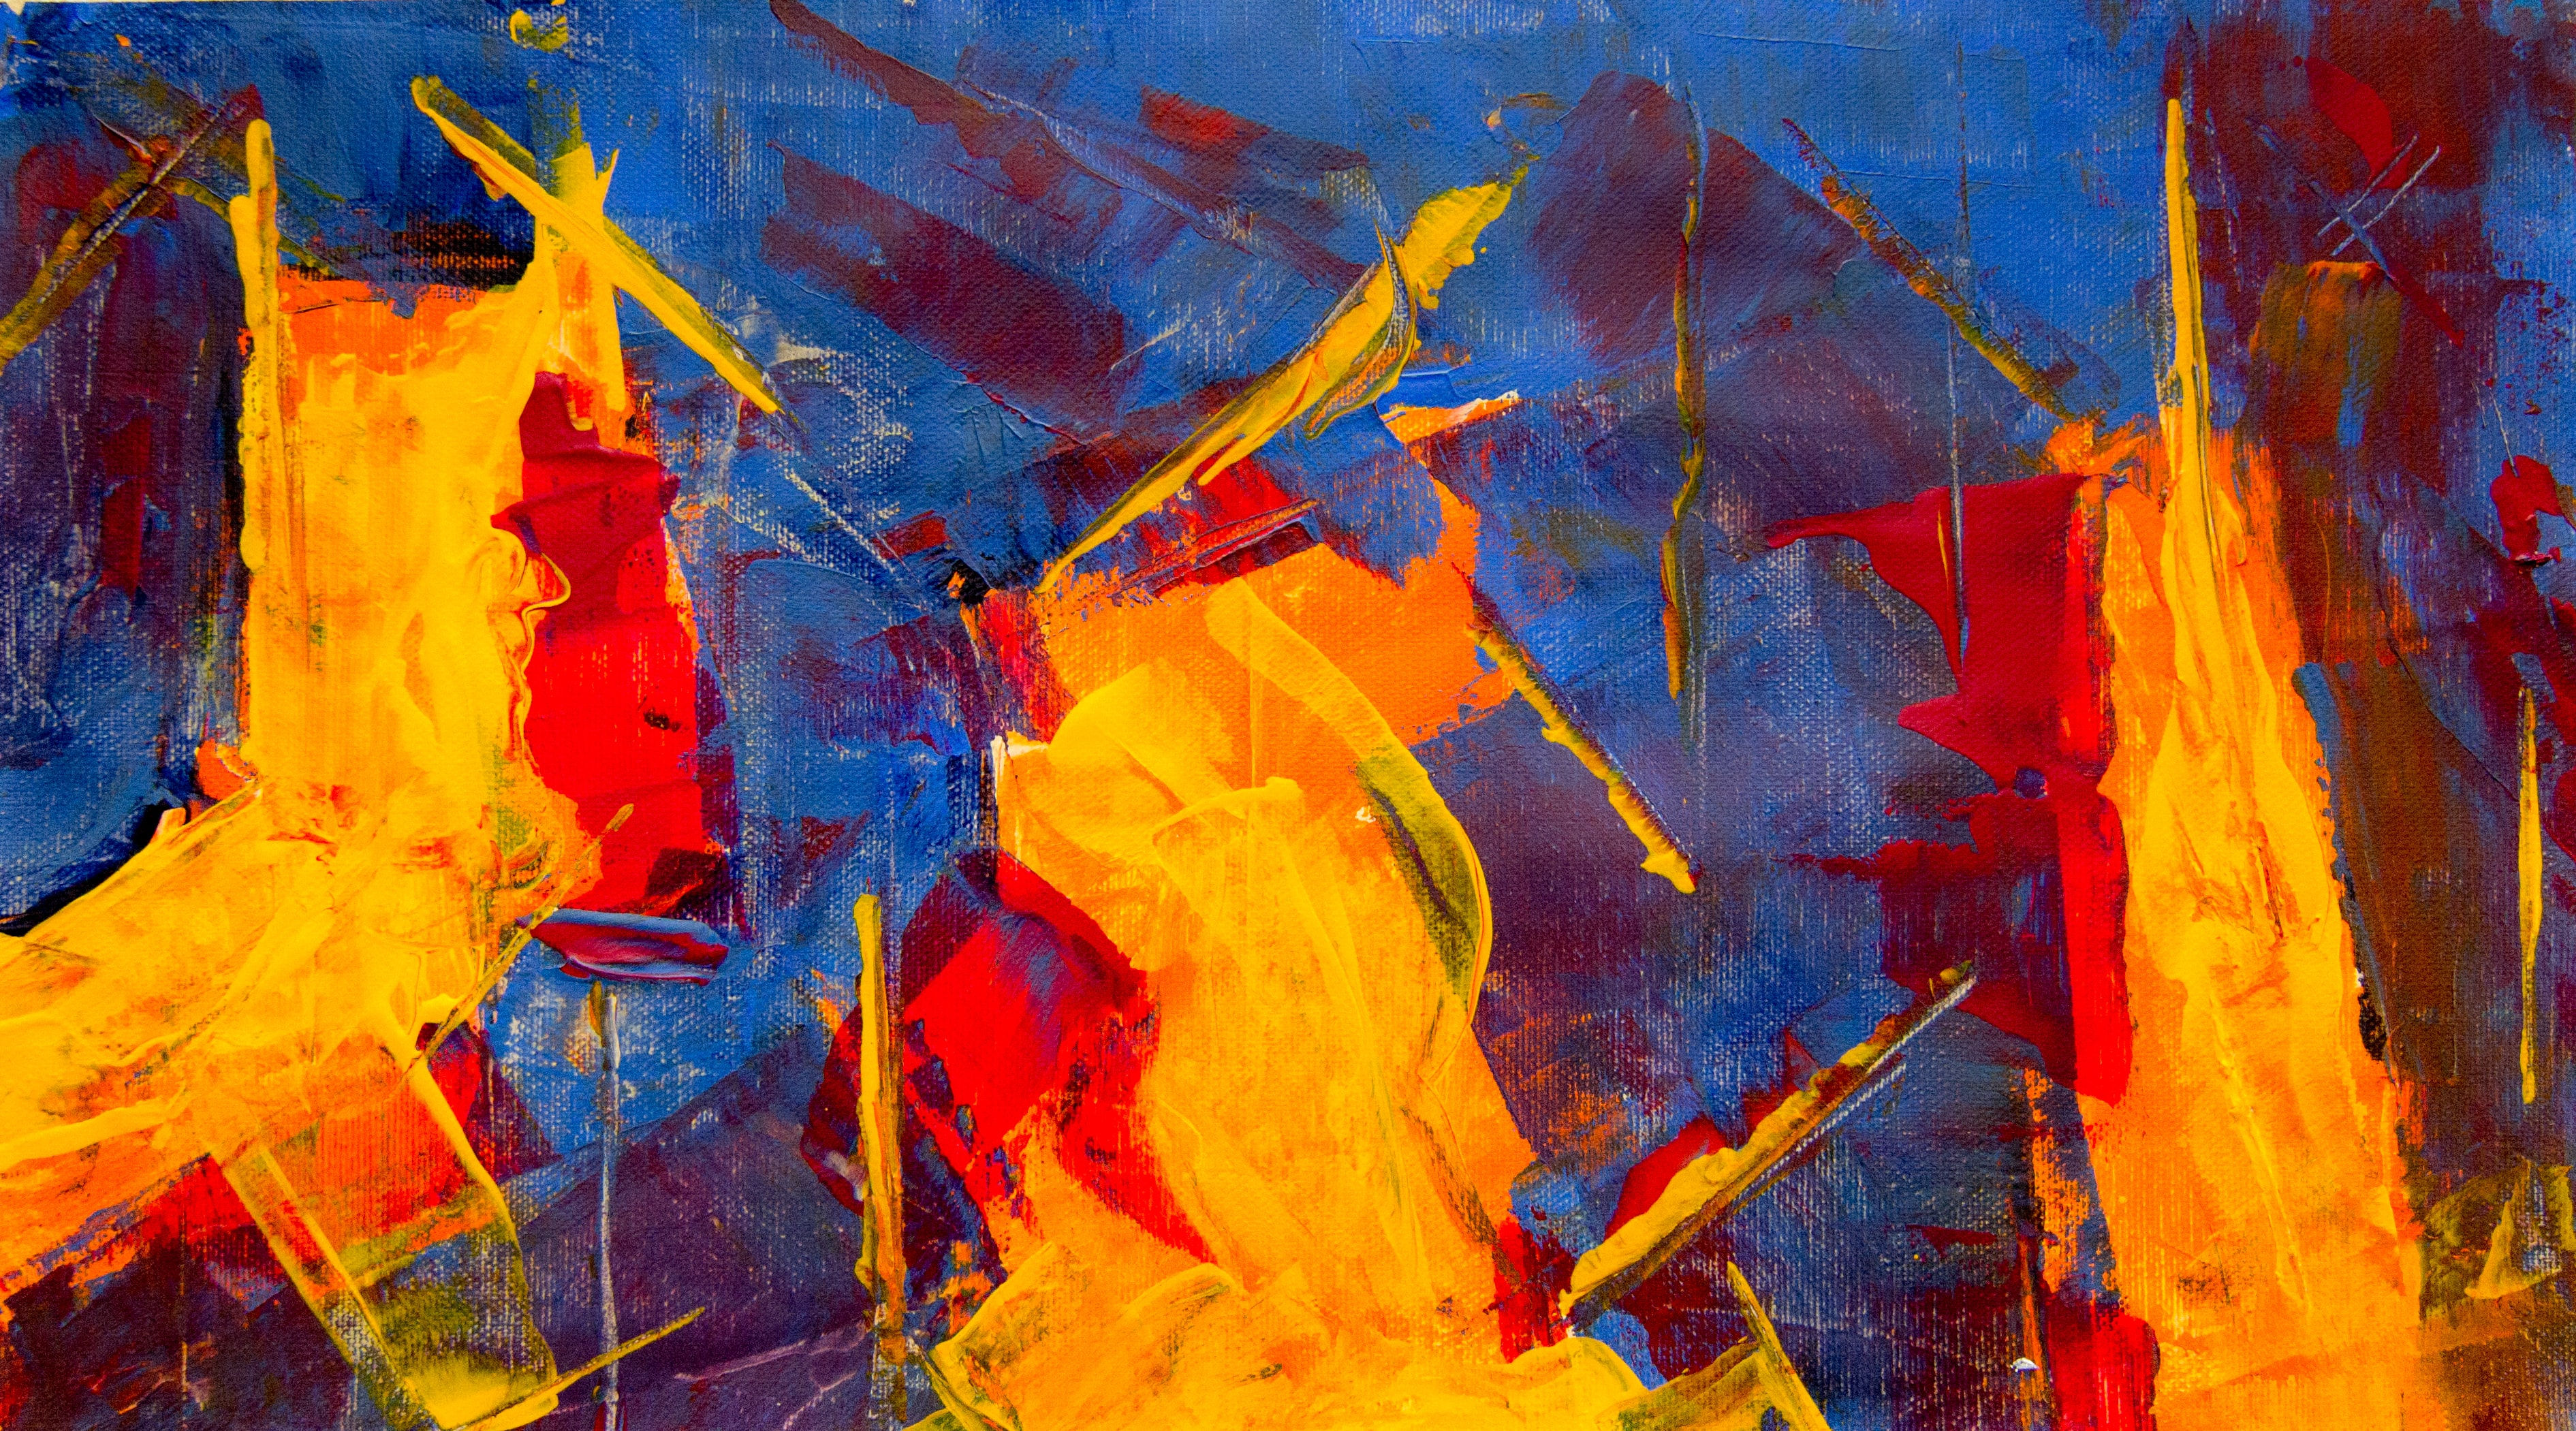 yellow, blue, brown, and red abstract painting